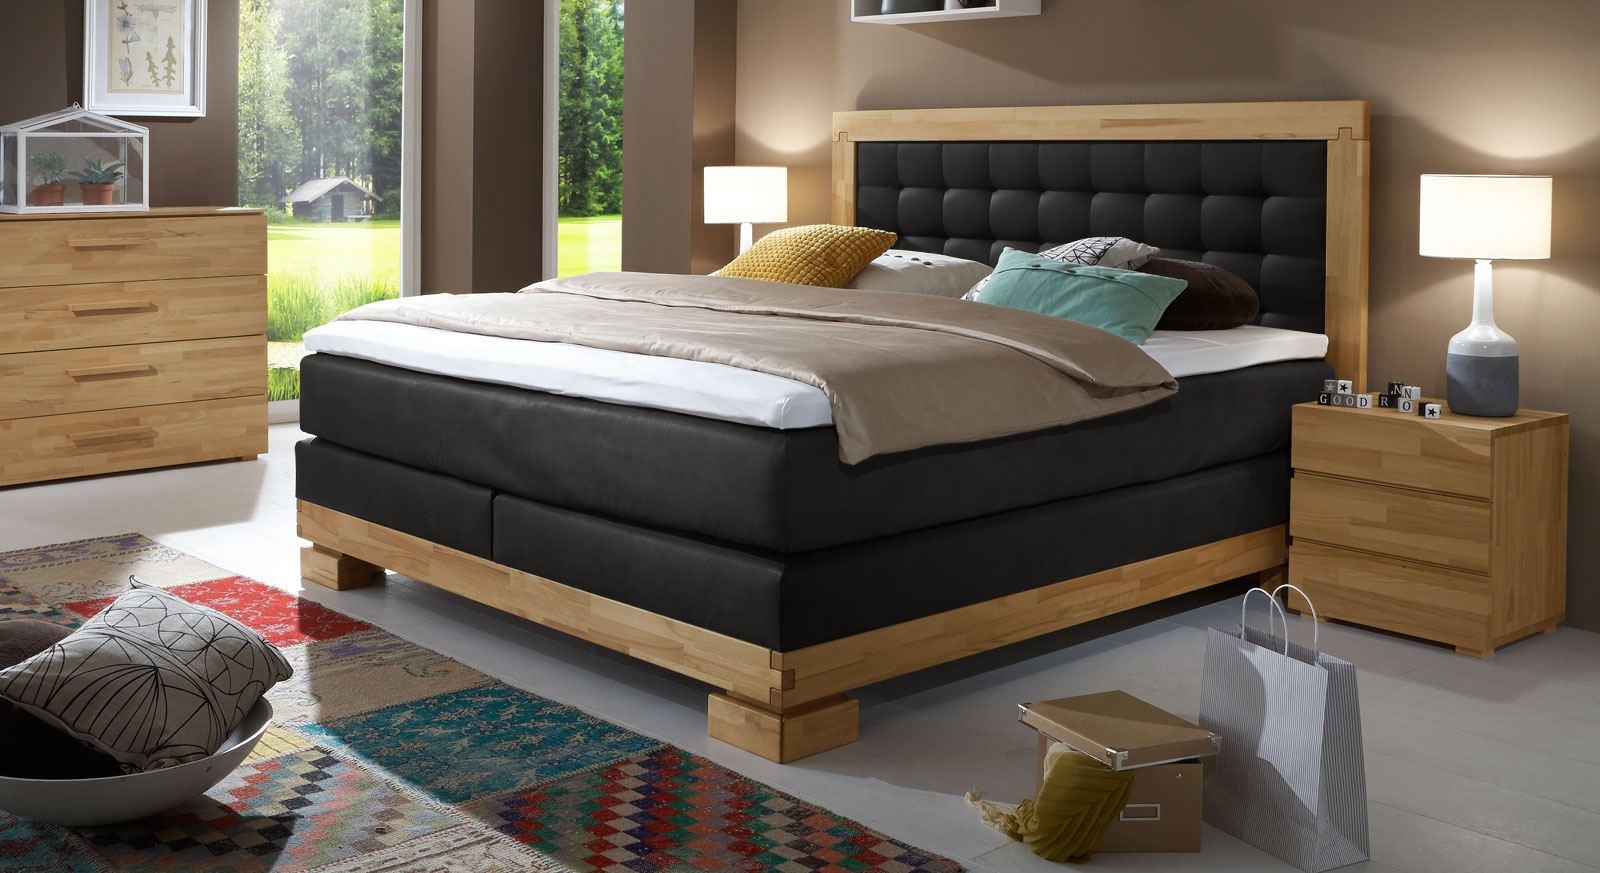 boxspringbett im landhaus stil aus buche viterbus. Black Bedroom Furniture Sets. Home Design Ideas